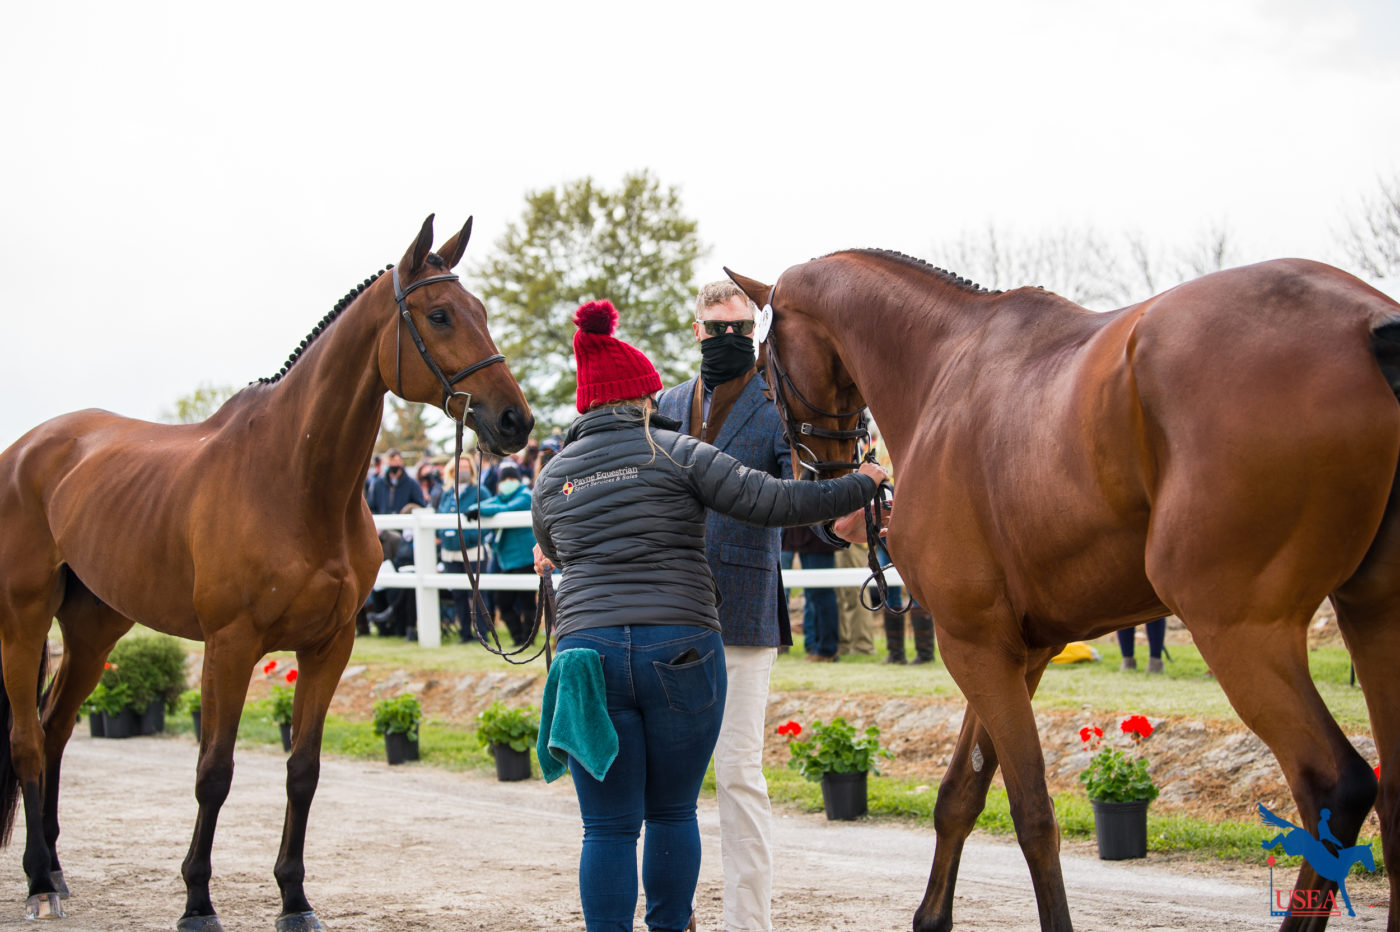 Doug Payne swapping horses with his groom, Courtney Carson. Erin Gilmore photo.